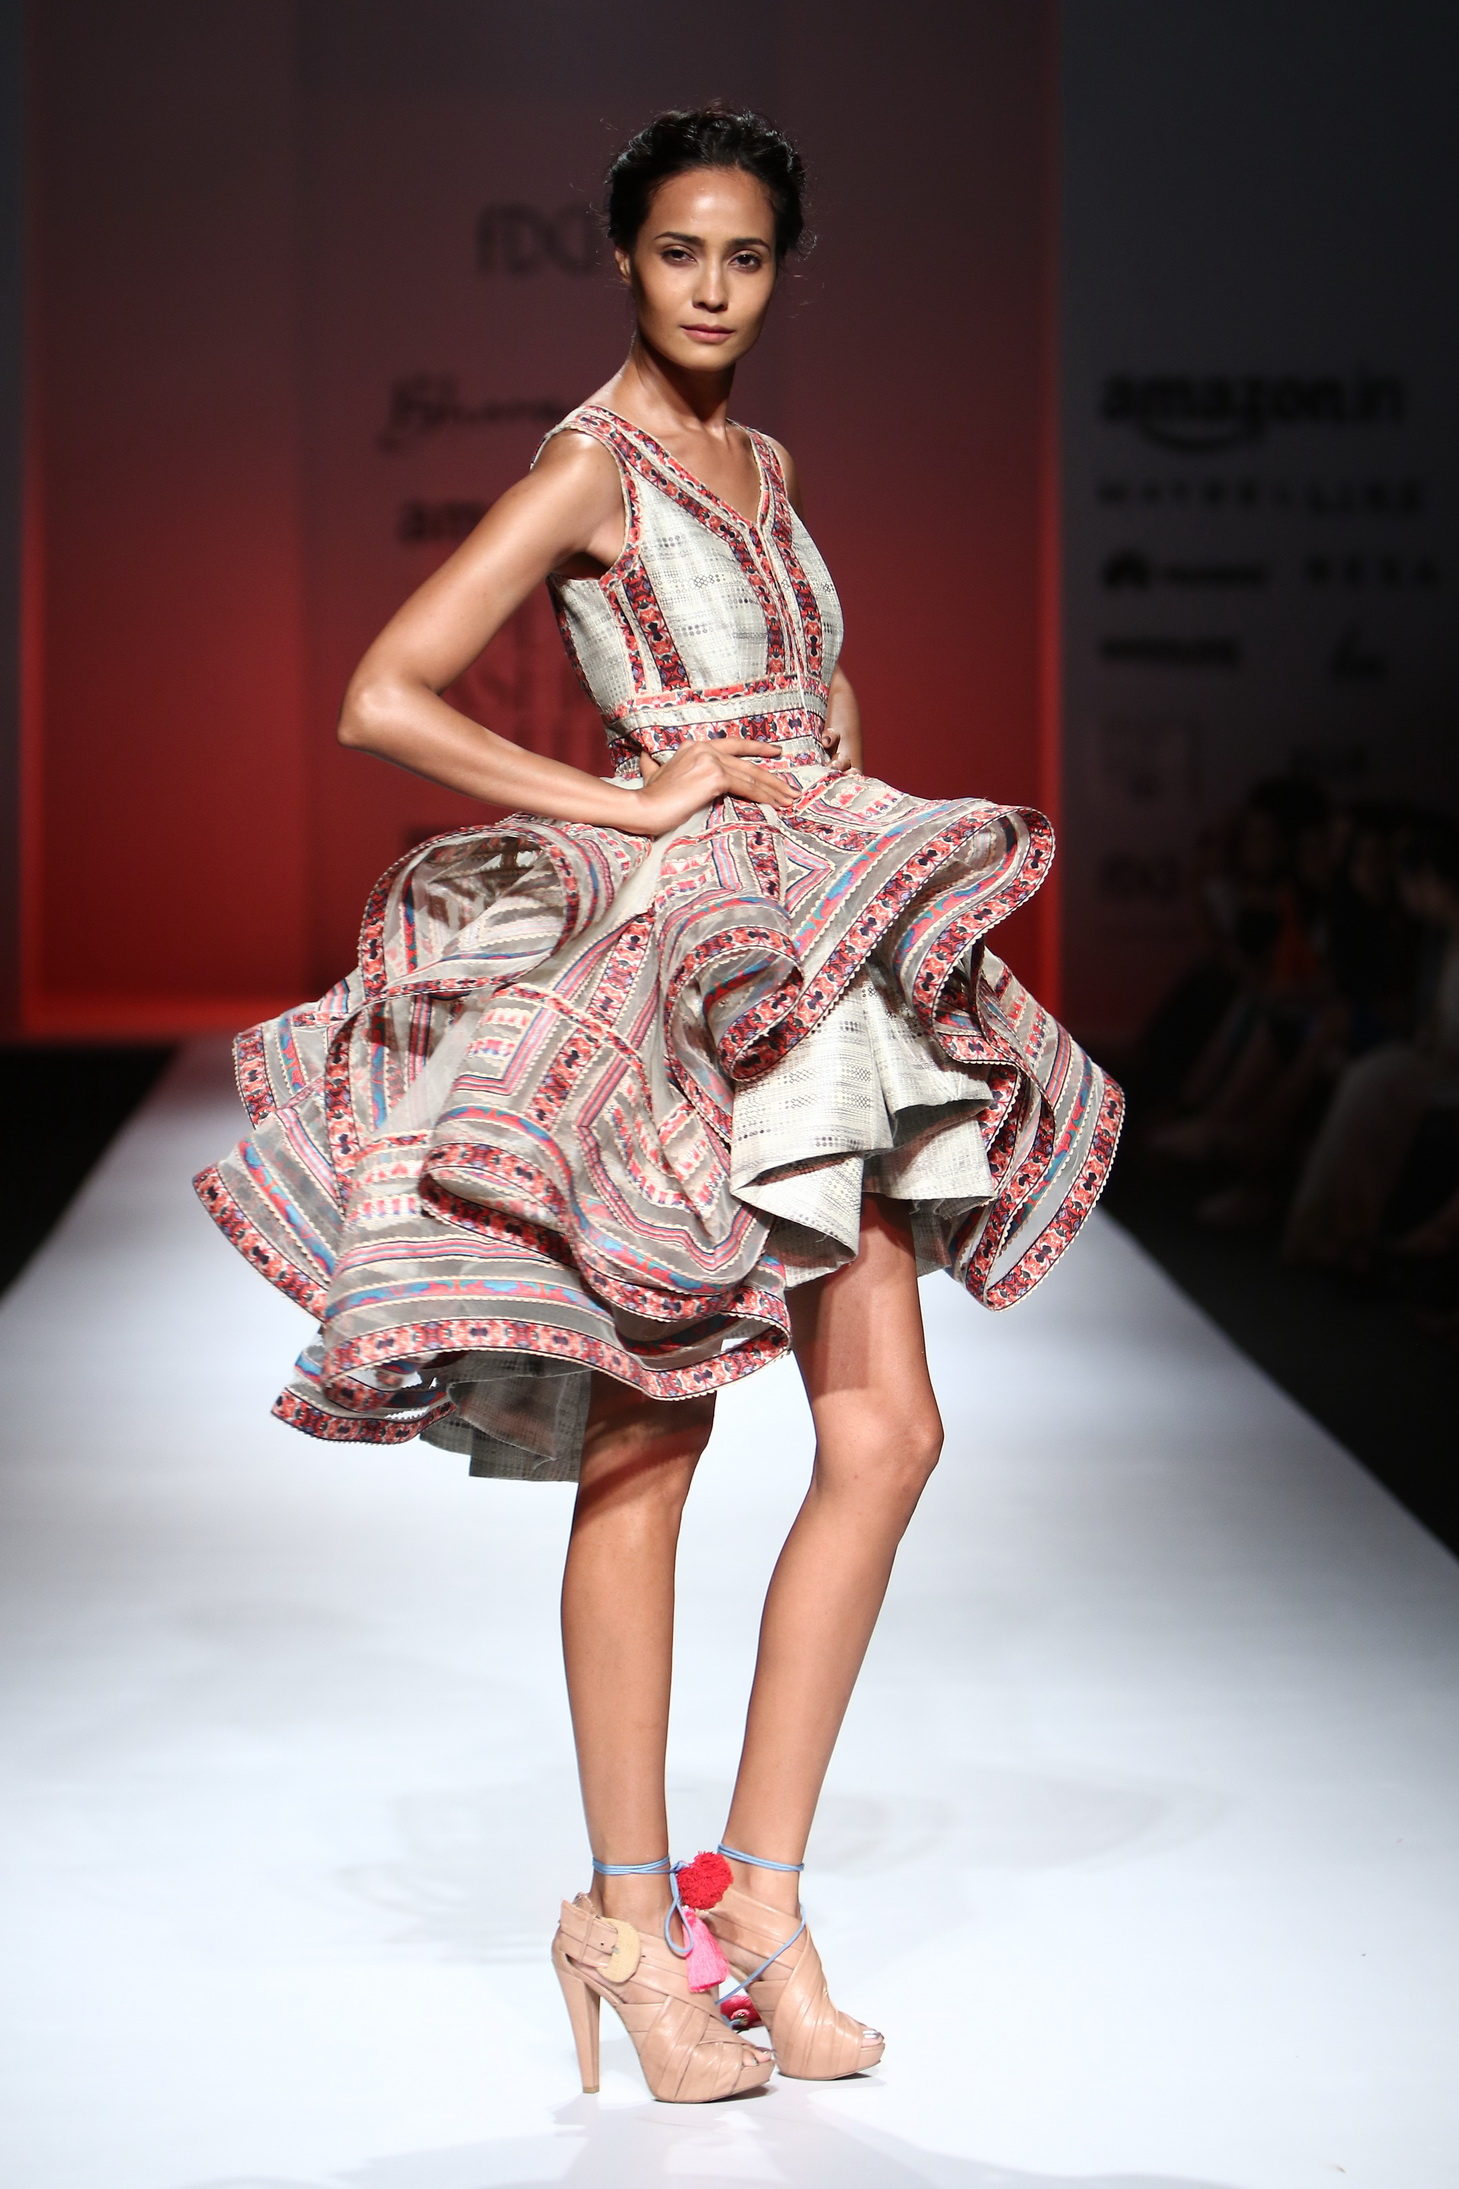 Bhanuni by Jyoti - Amazon India Fashion Week SS17